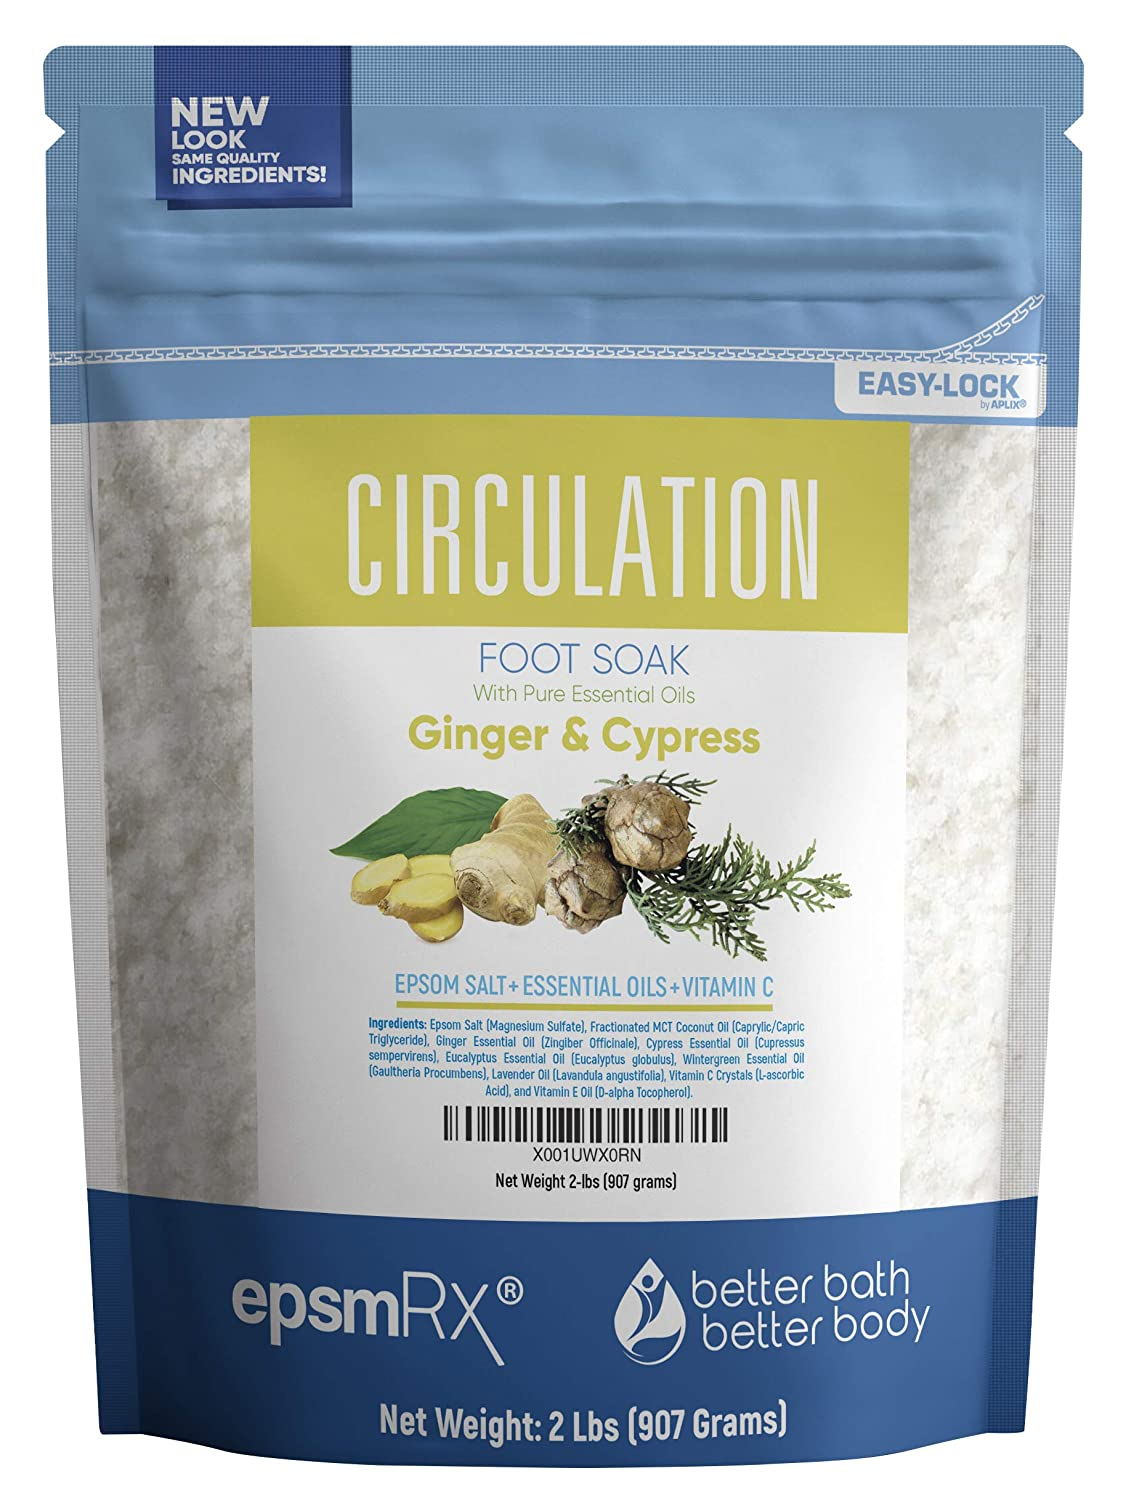 Circulation Foot Soak 32 Ounces Epsom Salt with Ginger, Cypress, Eucalyptus, Wintergreen and Lavender Essential Oils Plus Vitamin and All Natural Ingredients BPA Free Pouch with Easy Press-Lock